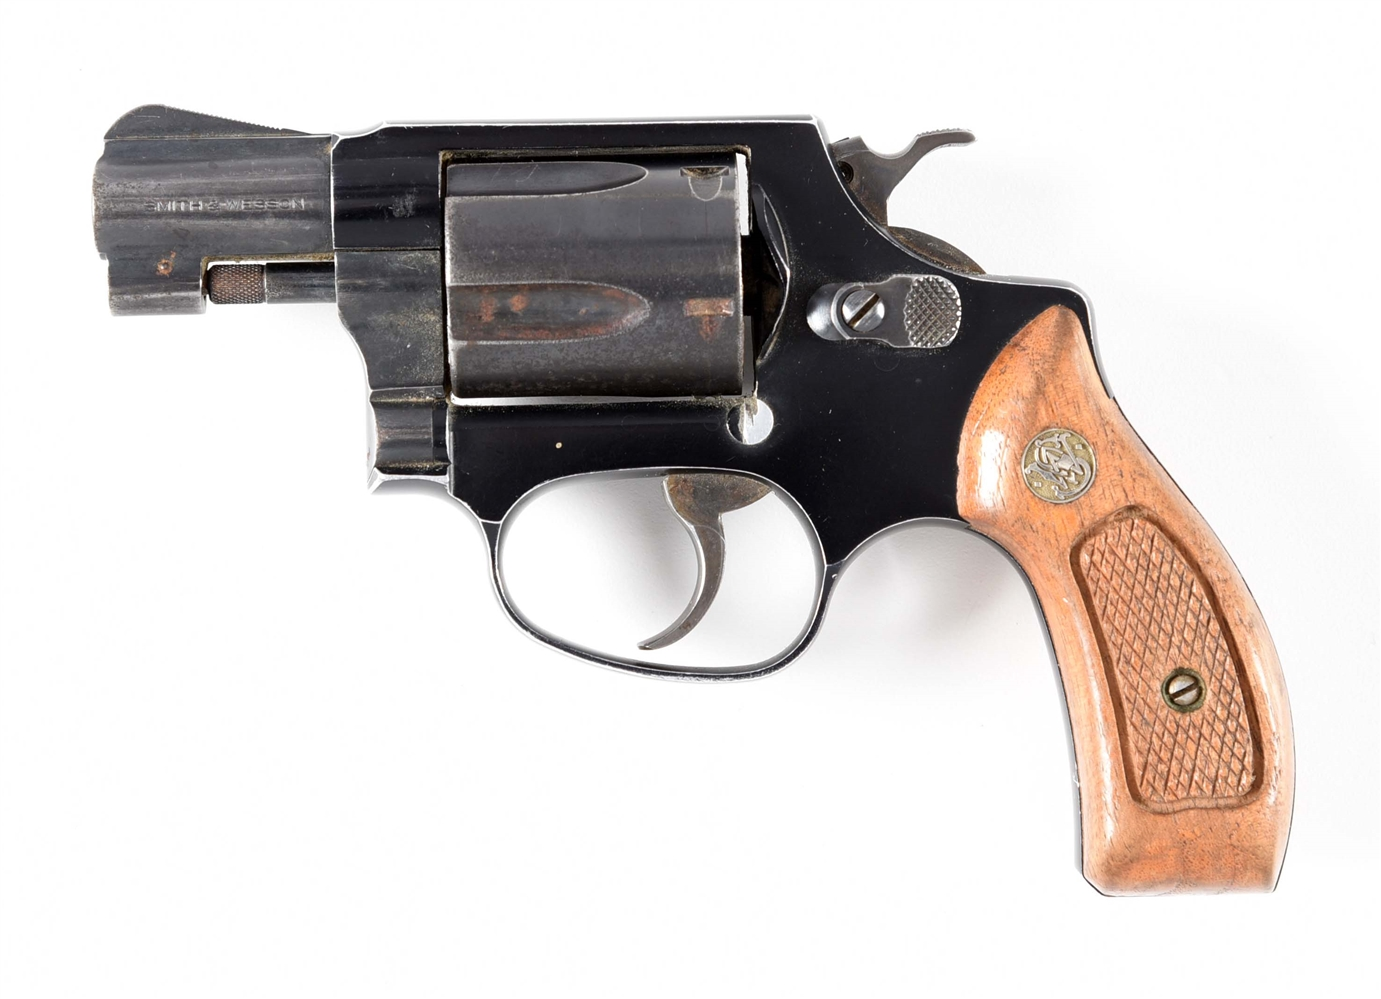 (M) SMITH & WESSON MODEL 37-2 AIRWEIGHT DOUBLE ACTION .38 REVOLVER.